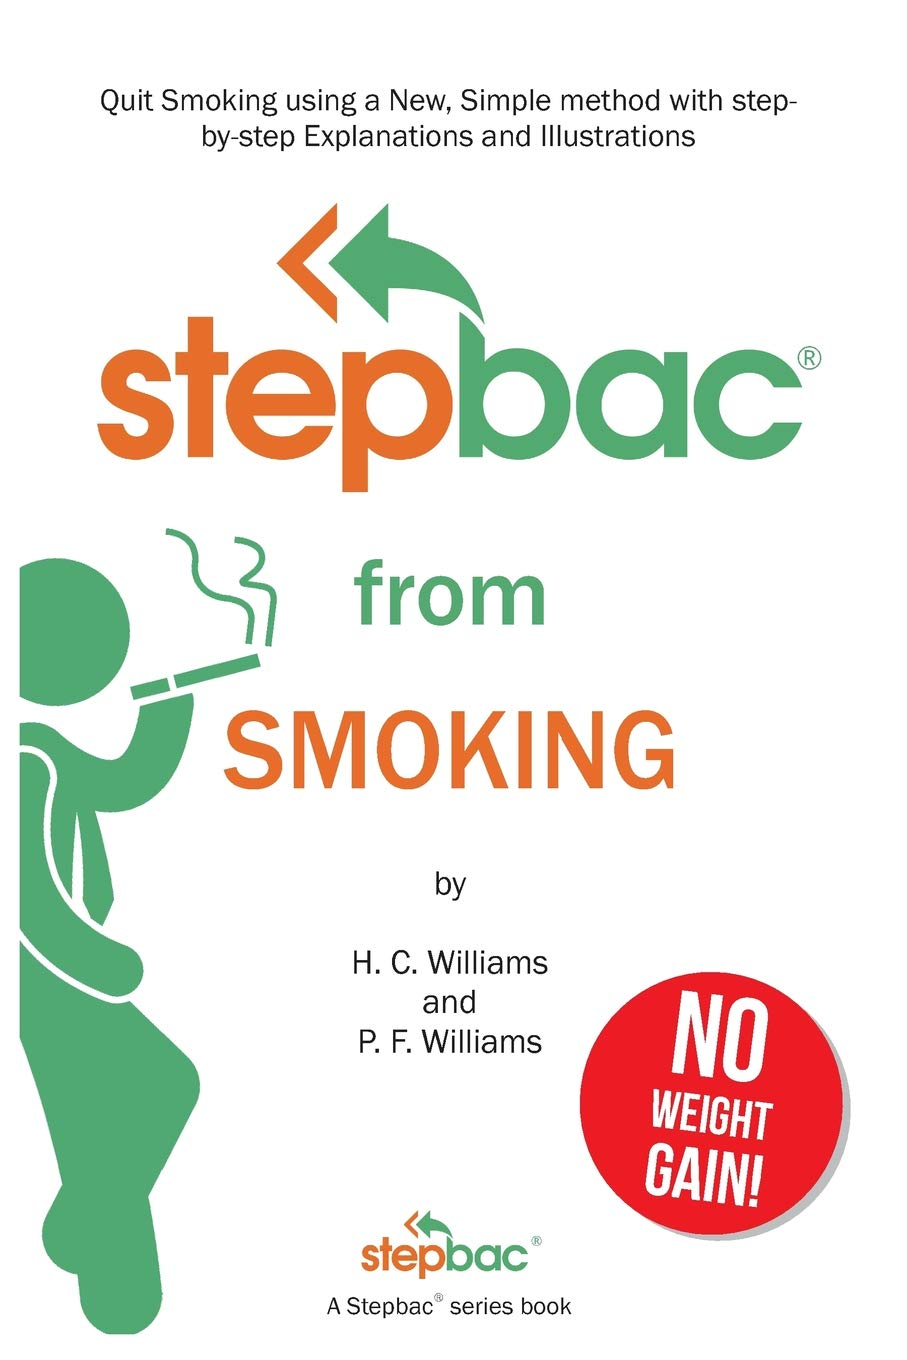 Stepbac from Smoking now in paperback too